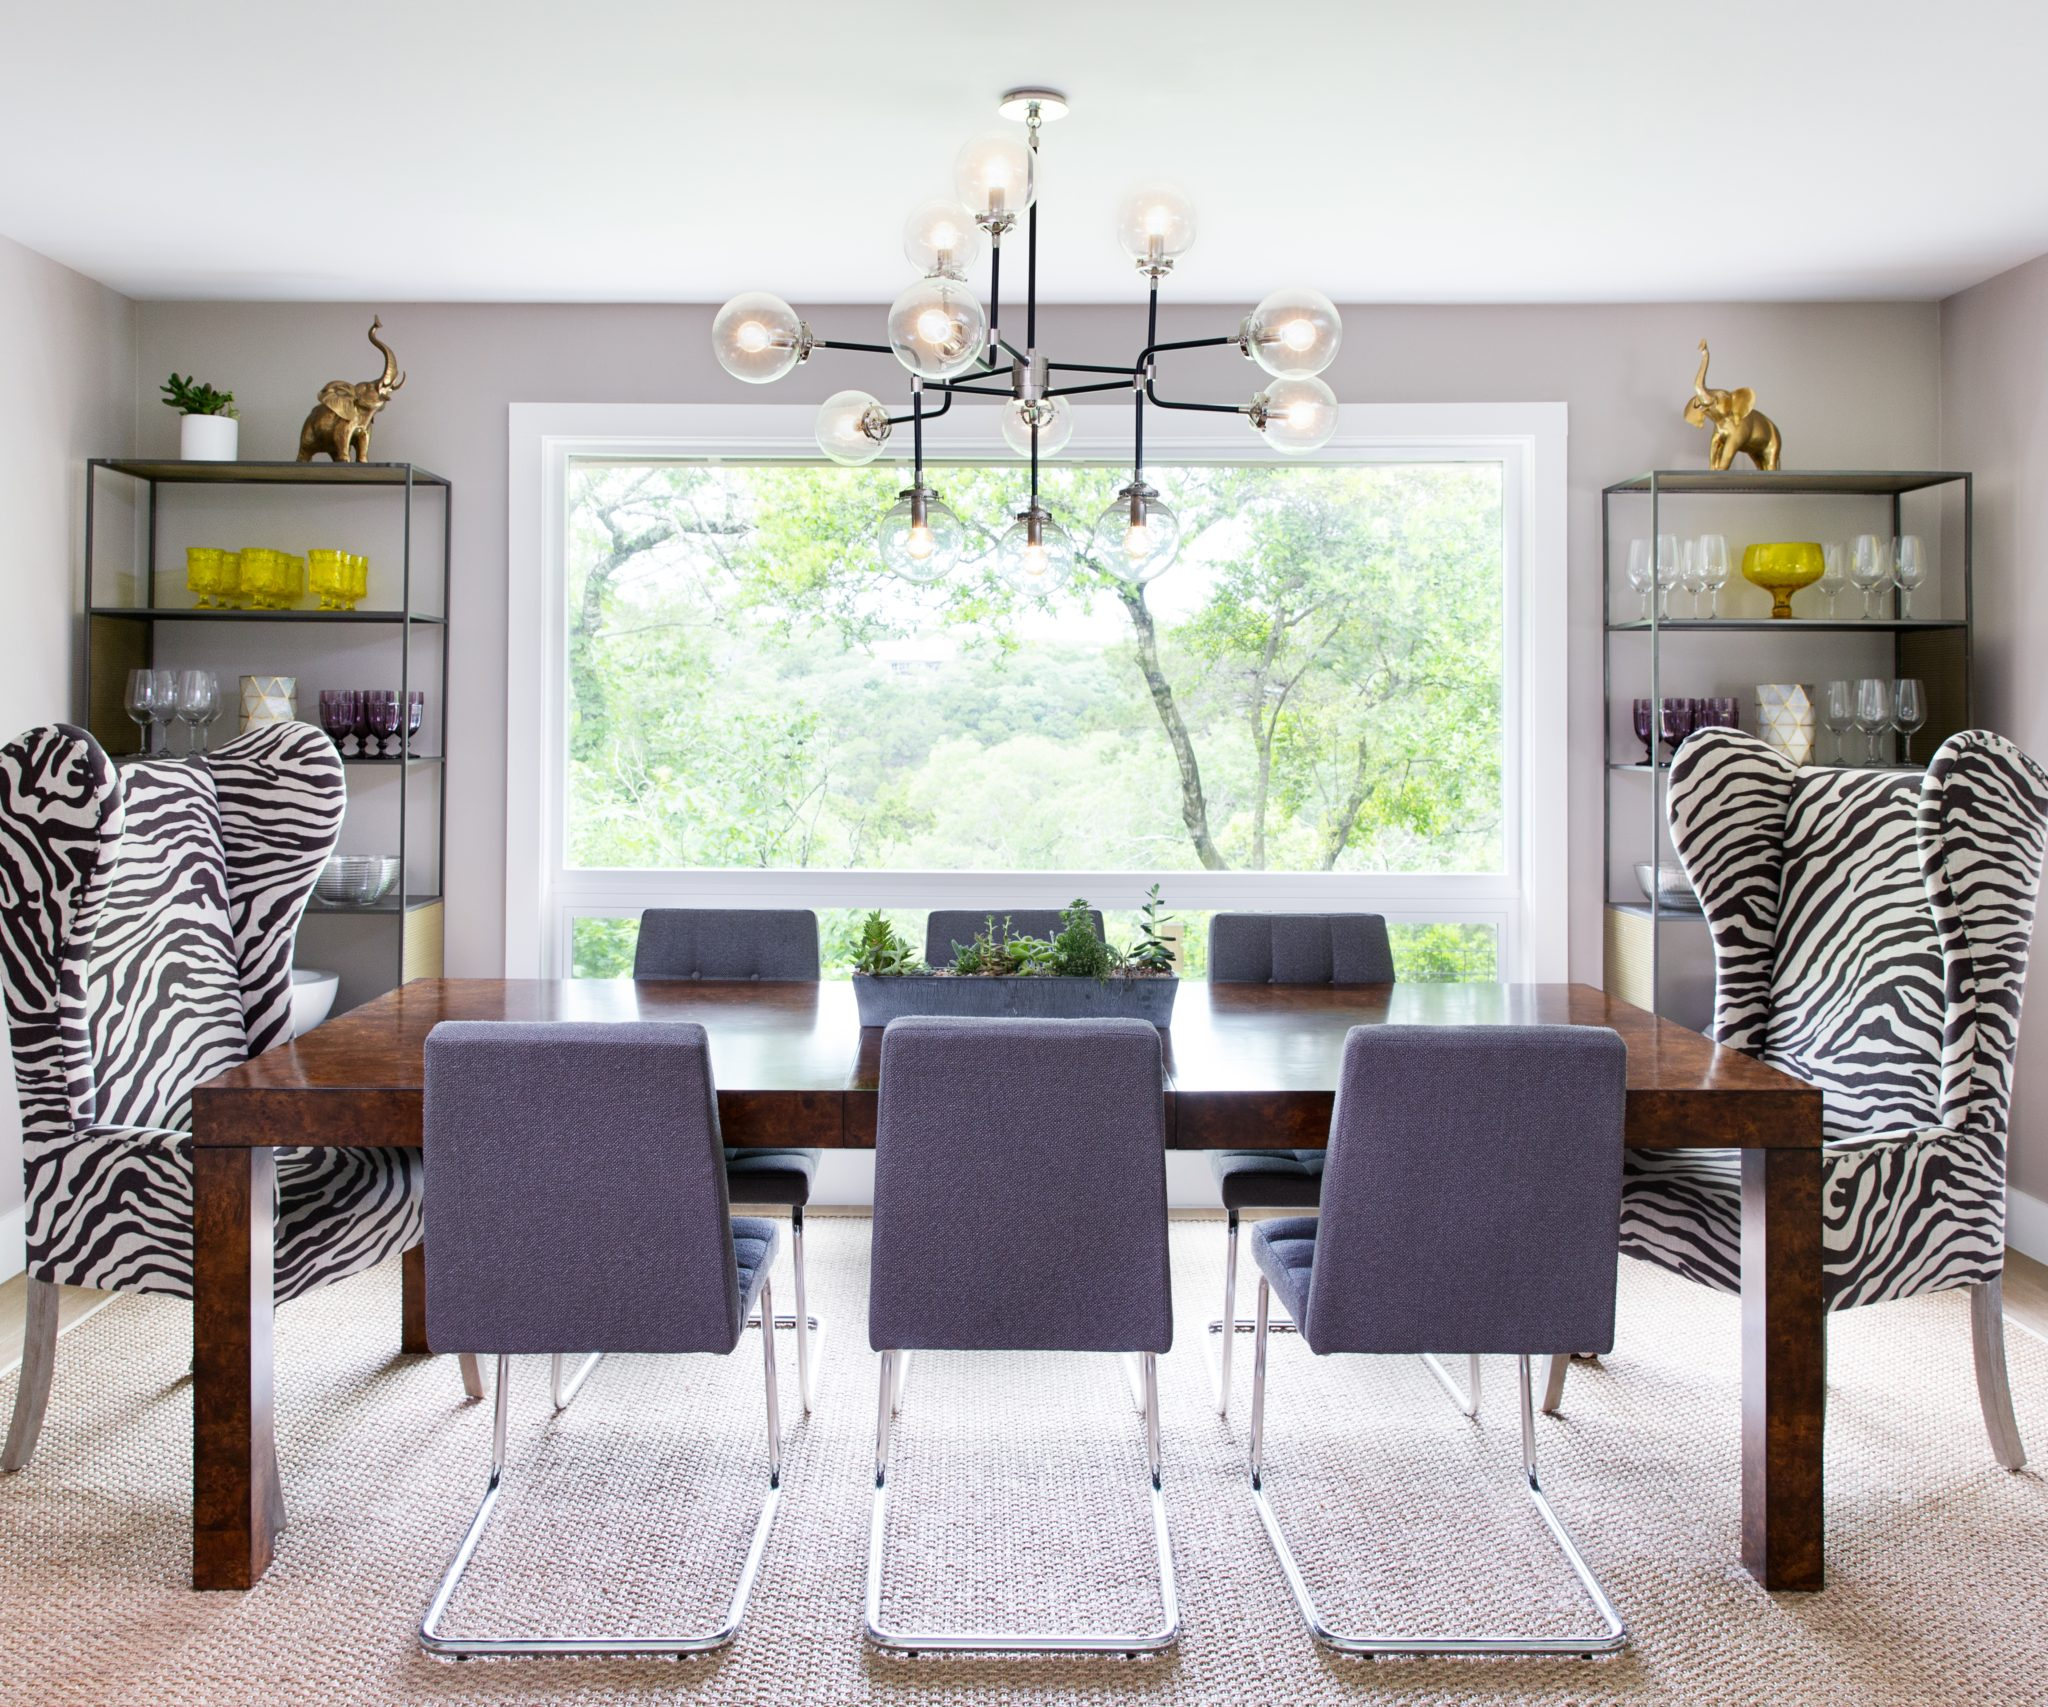 """9. Mix & Match   Mix and match furnishings, lighting, or artwork to give your space a creative style. """"Mismatched furniture just makes everything better,"""" says Fisher. """"It's less expected and creates interest, especially when the patterns are so different."""" In this space, six neutral dining chairs are contrasted by two zebra print armchairs."""